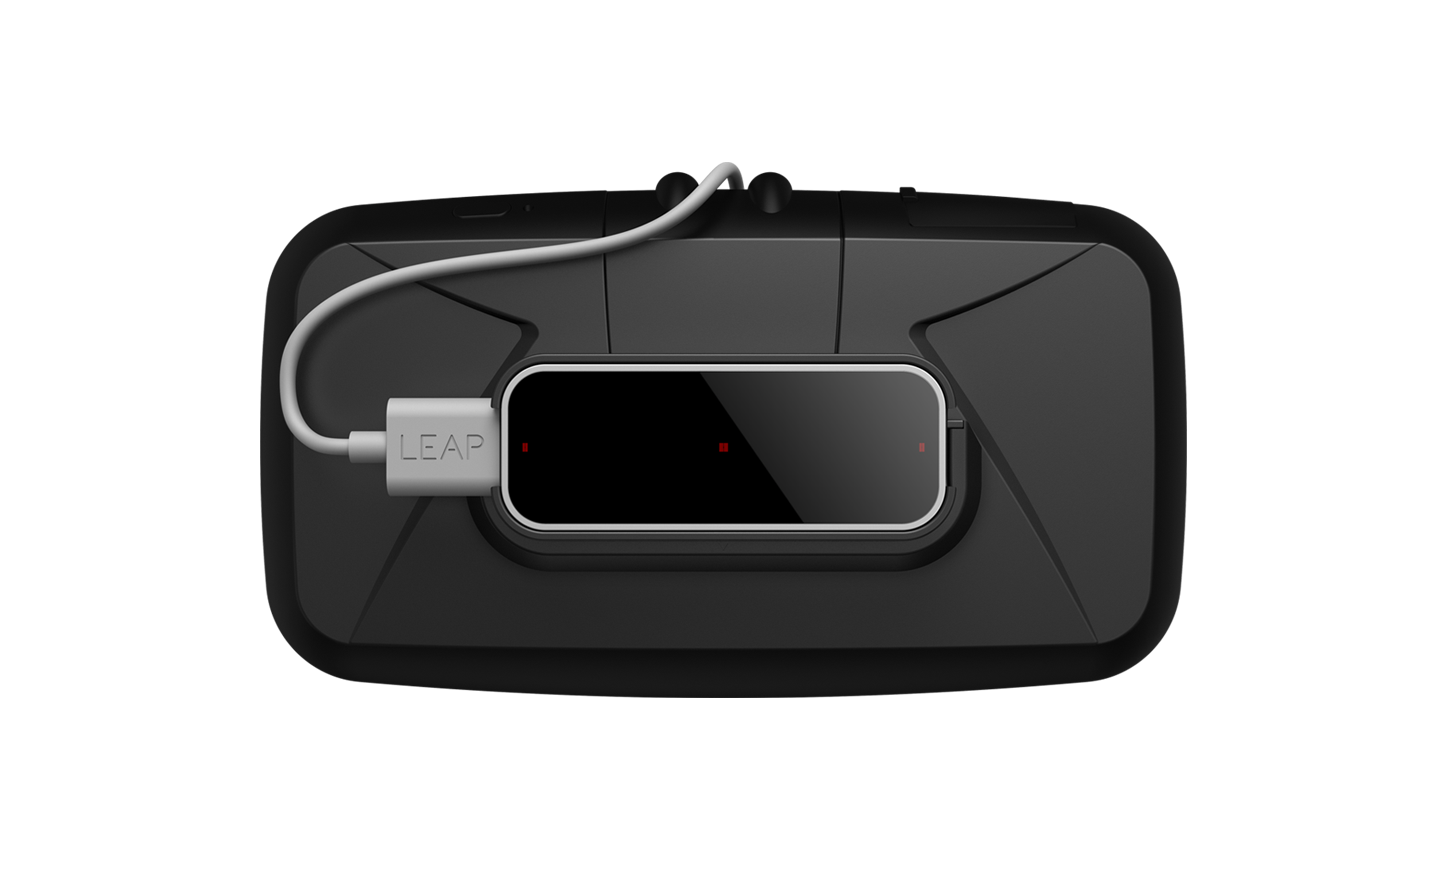 Leap Motion clipped to the front of Oculus Rift. Photo courtesy of Leap Motion.